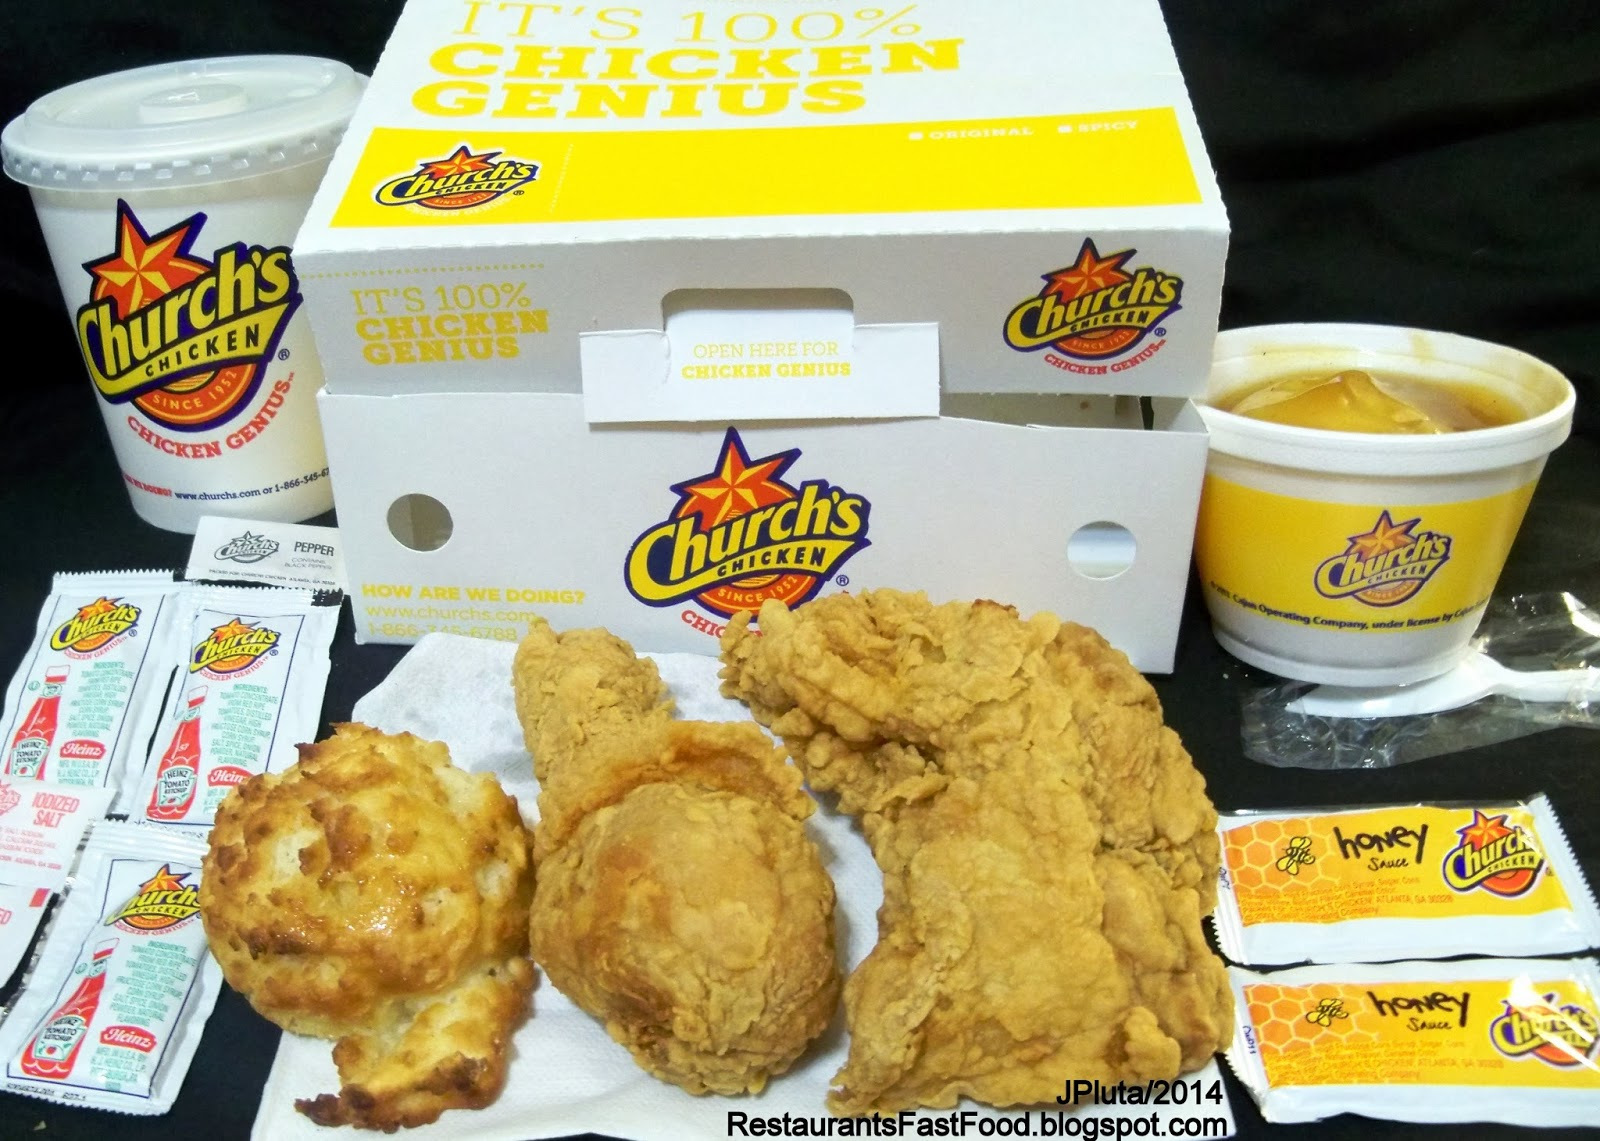 Church S En Dinner 2 Piece T Leg Mashed Potato Gravy With Ermilk Biscuit Honey Packets Fried Fast Food Restaurant